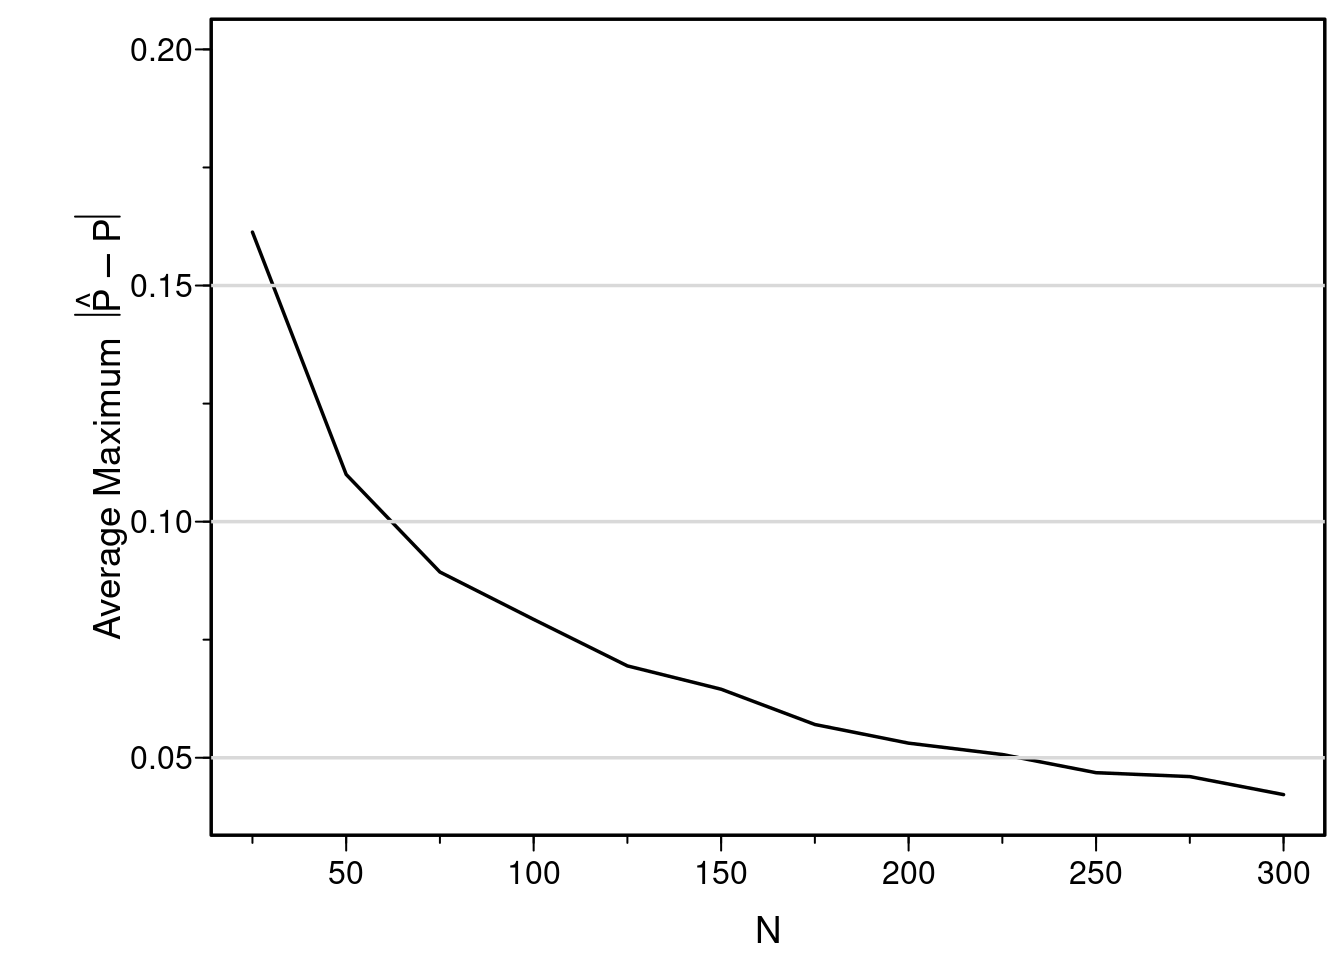 Simulated expected maximum error in estimating probabilities for x ∈ [-1.5, 1.5] with a single normally distributed X with mean zero.  The true relationship between X and P(Y=1 | X) is assumed to be logit(Y=1) = X.  The logistic model fits that are repeated in the simulation assume the relationship is linear, but estimates the slope and intercept.  In reality, we wouldn't know that a relationship is linear, and if we allowed it to be nonlinear there would be a bit more variance to the estimated curve, resulting in larger average absolute errors than what are shown in the figure (see below).